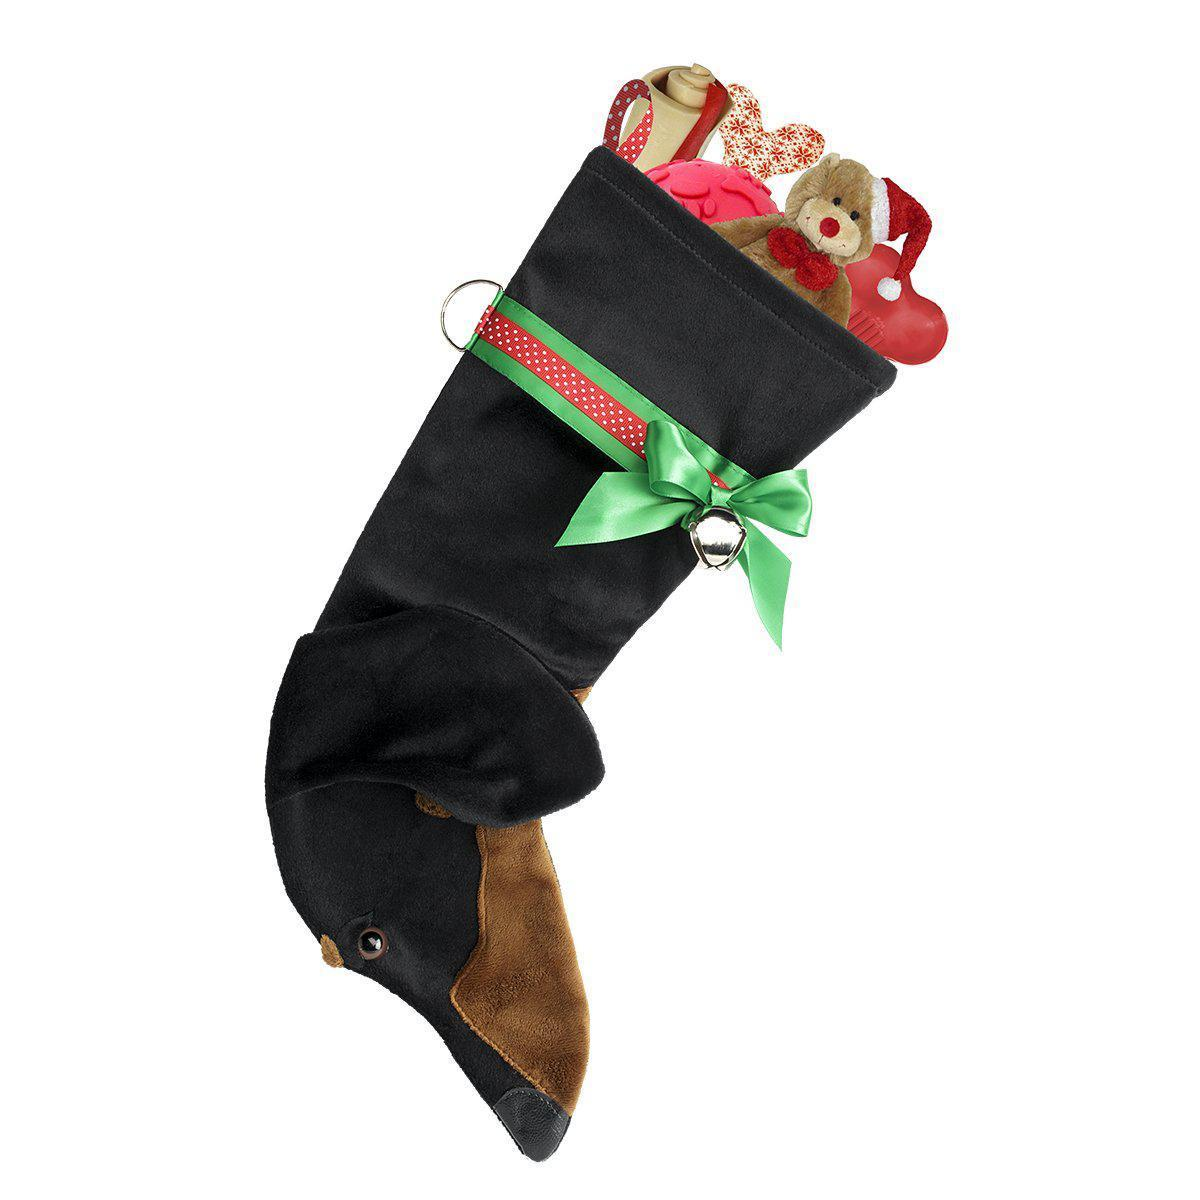 Black/Tan Dachshund Christmas Stocking